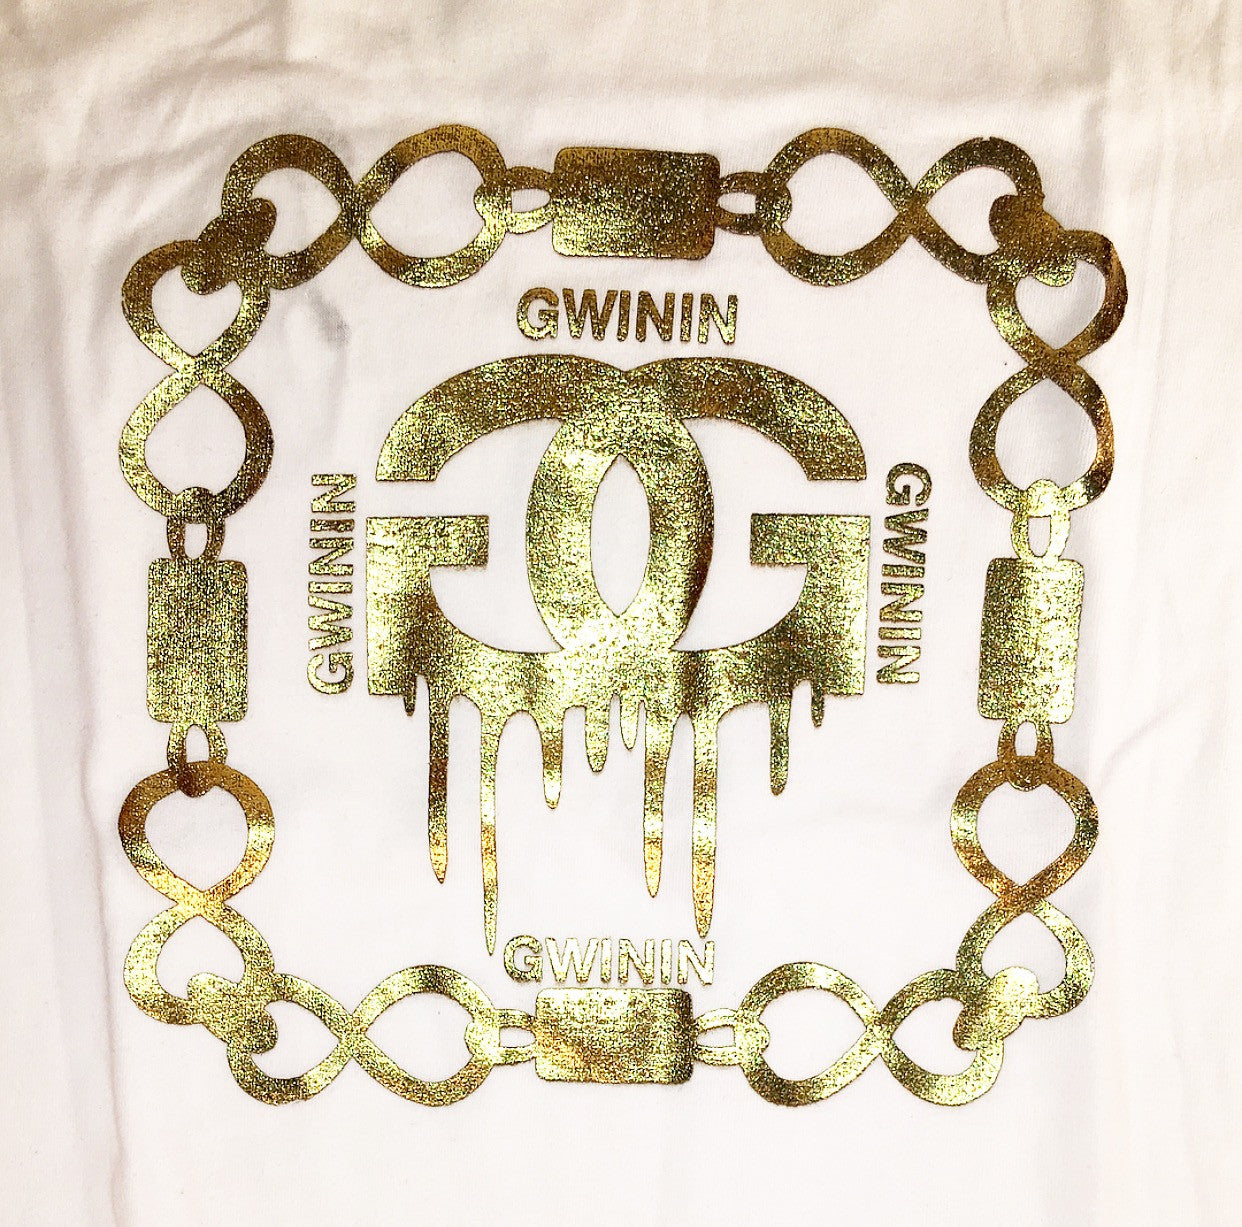 Women's Gold GC Gwinin Chain White T-Shirt